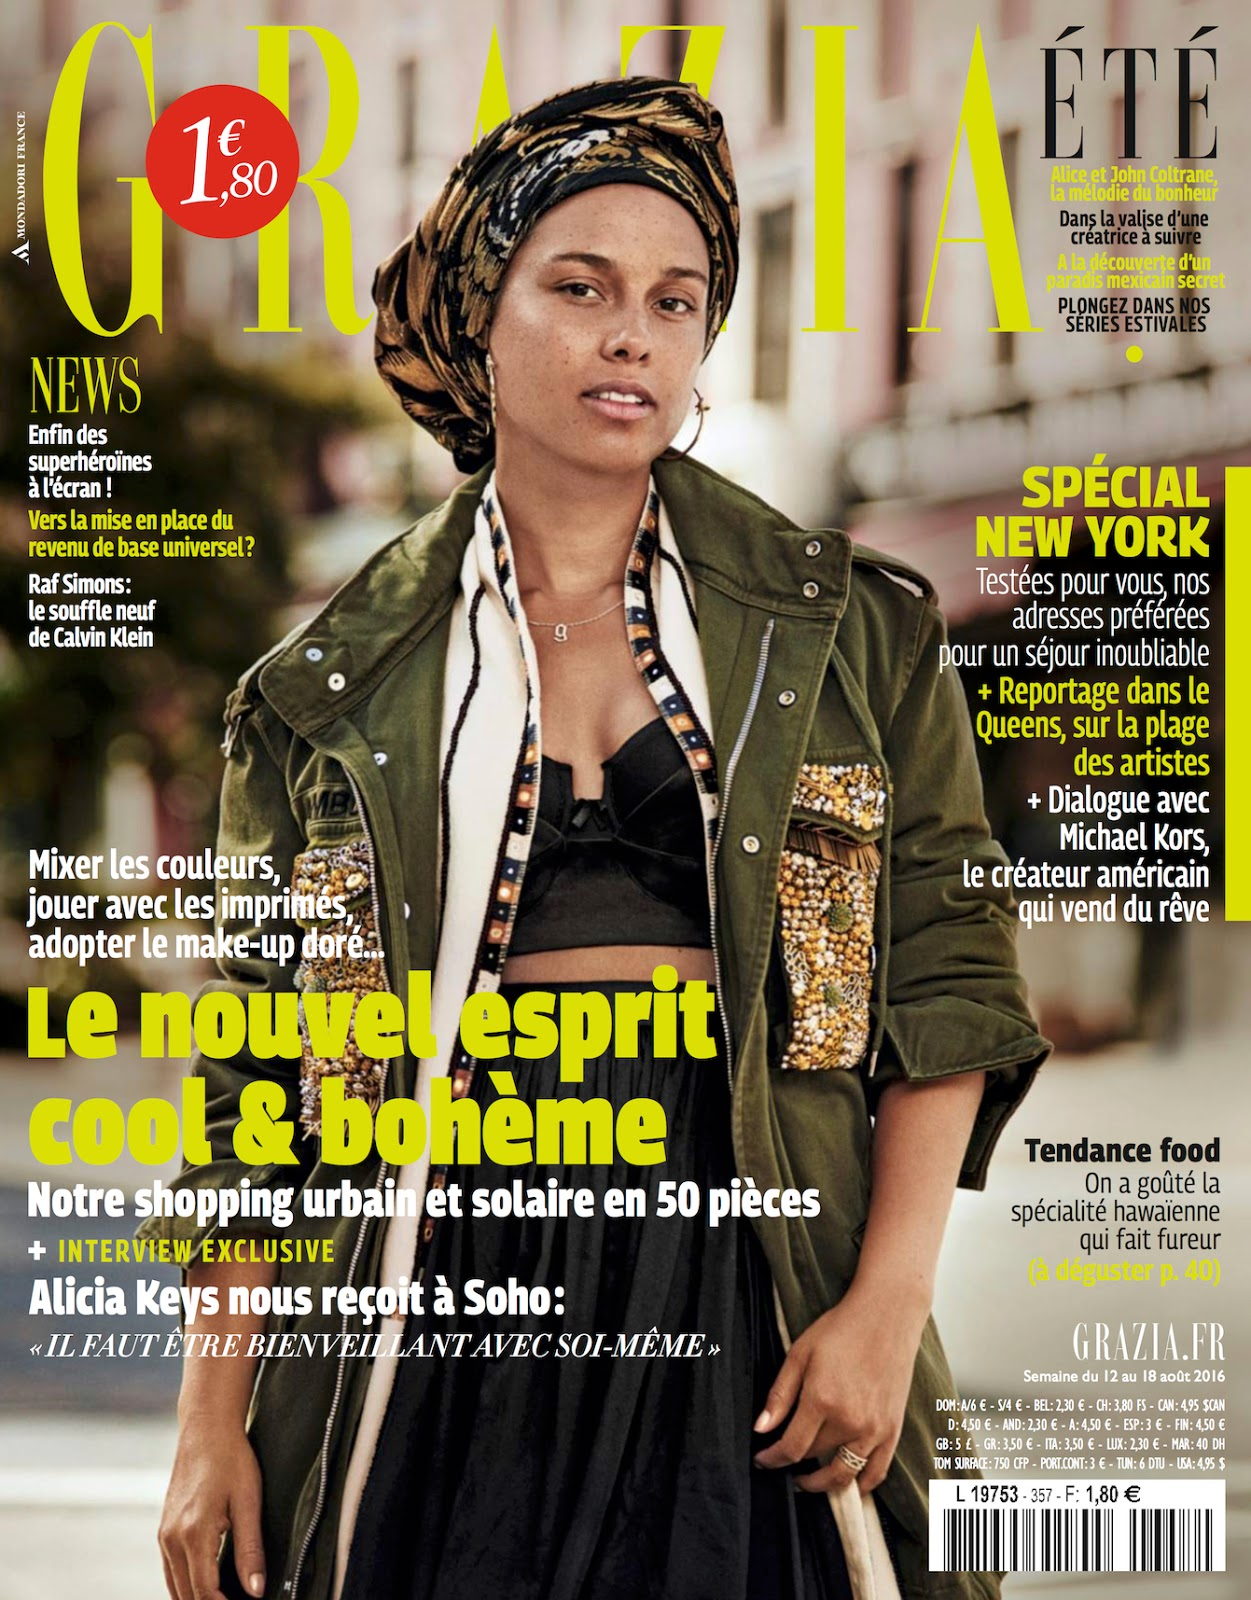 Alicia Keys Lands Her Second Make-Up Less Cover! Check out her Spread in Grazia France Latest Issue